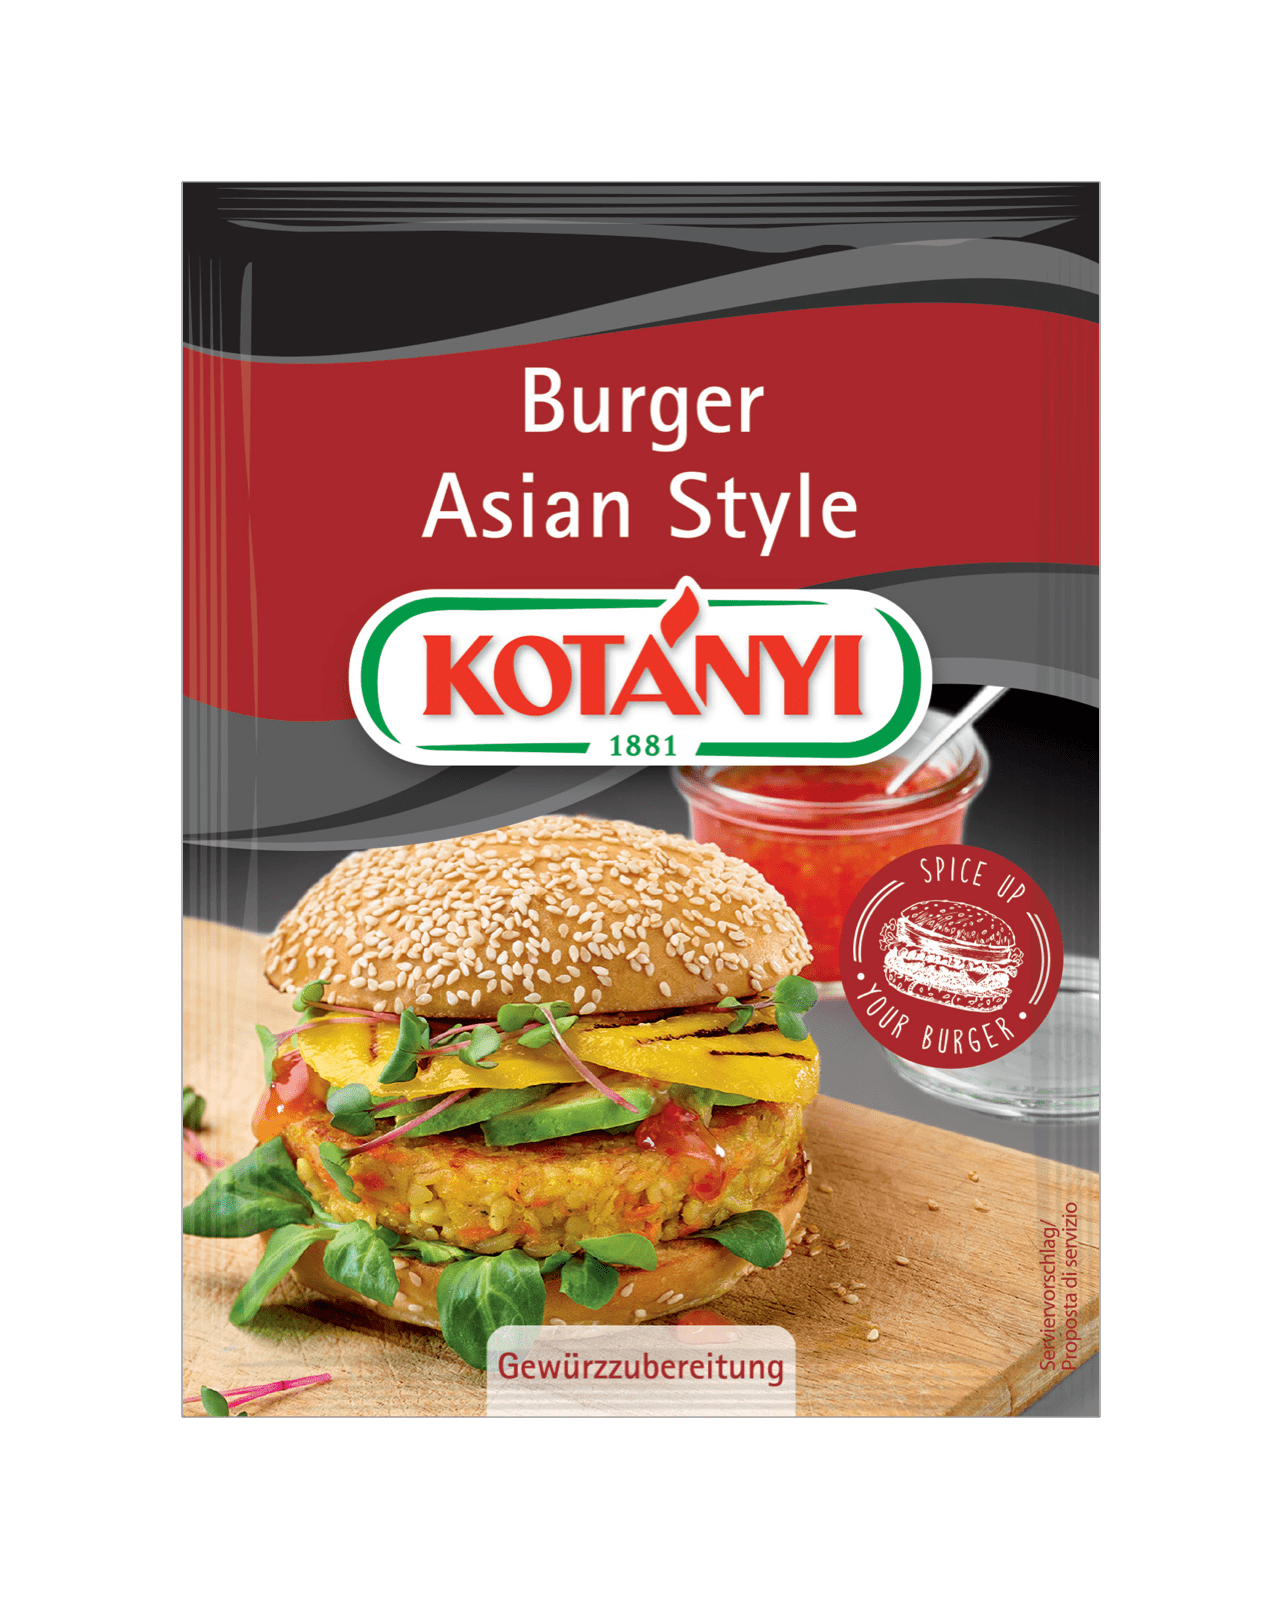 Kotányi Burger Asian Style im Brief